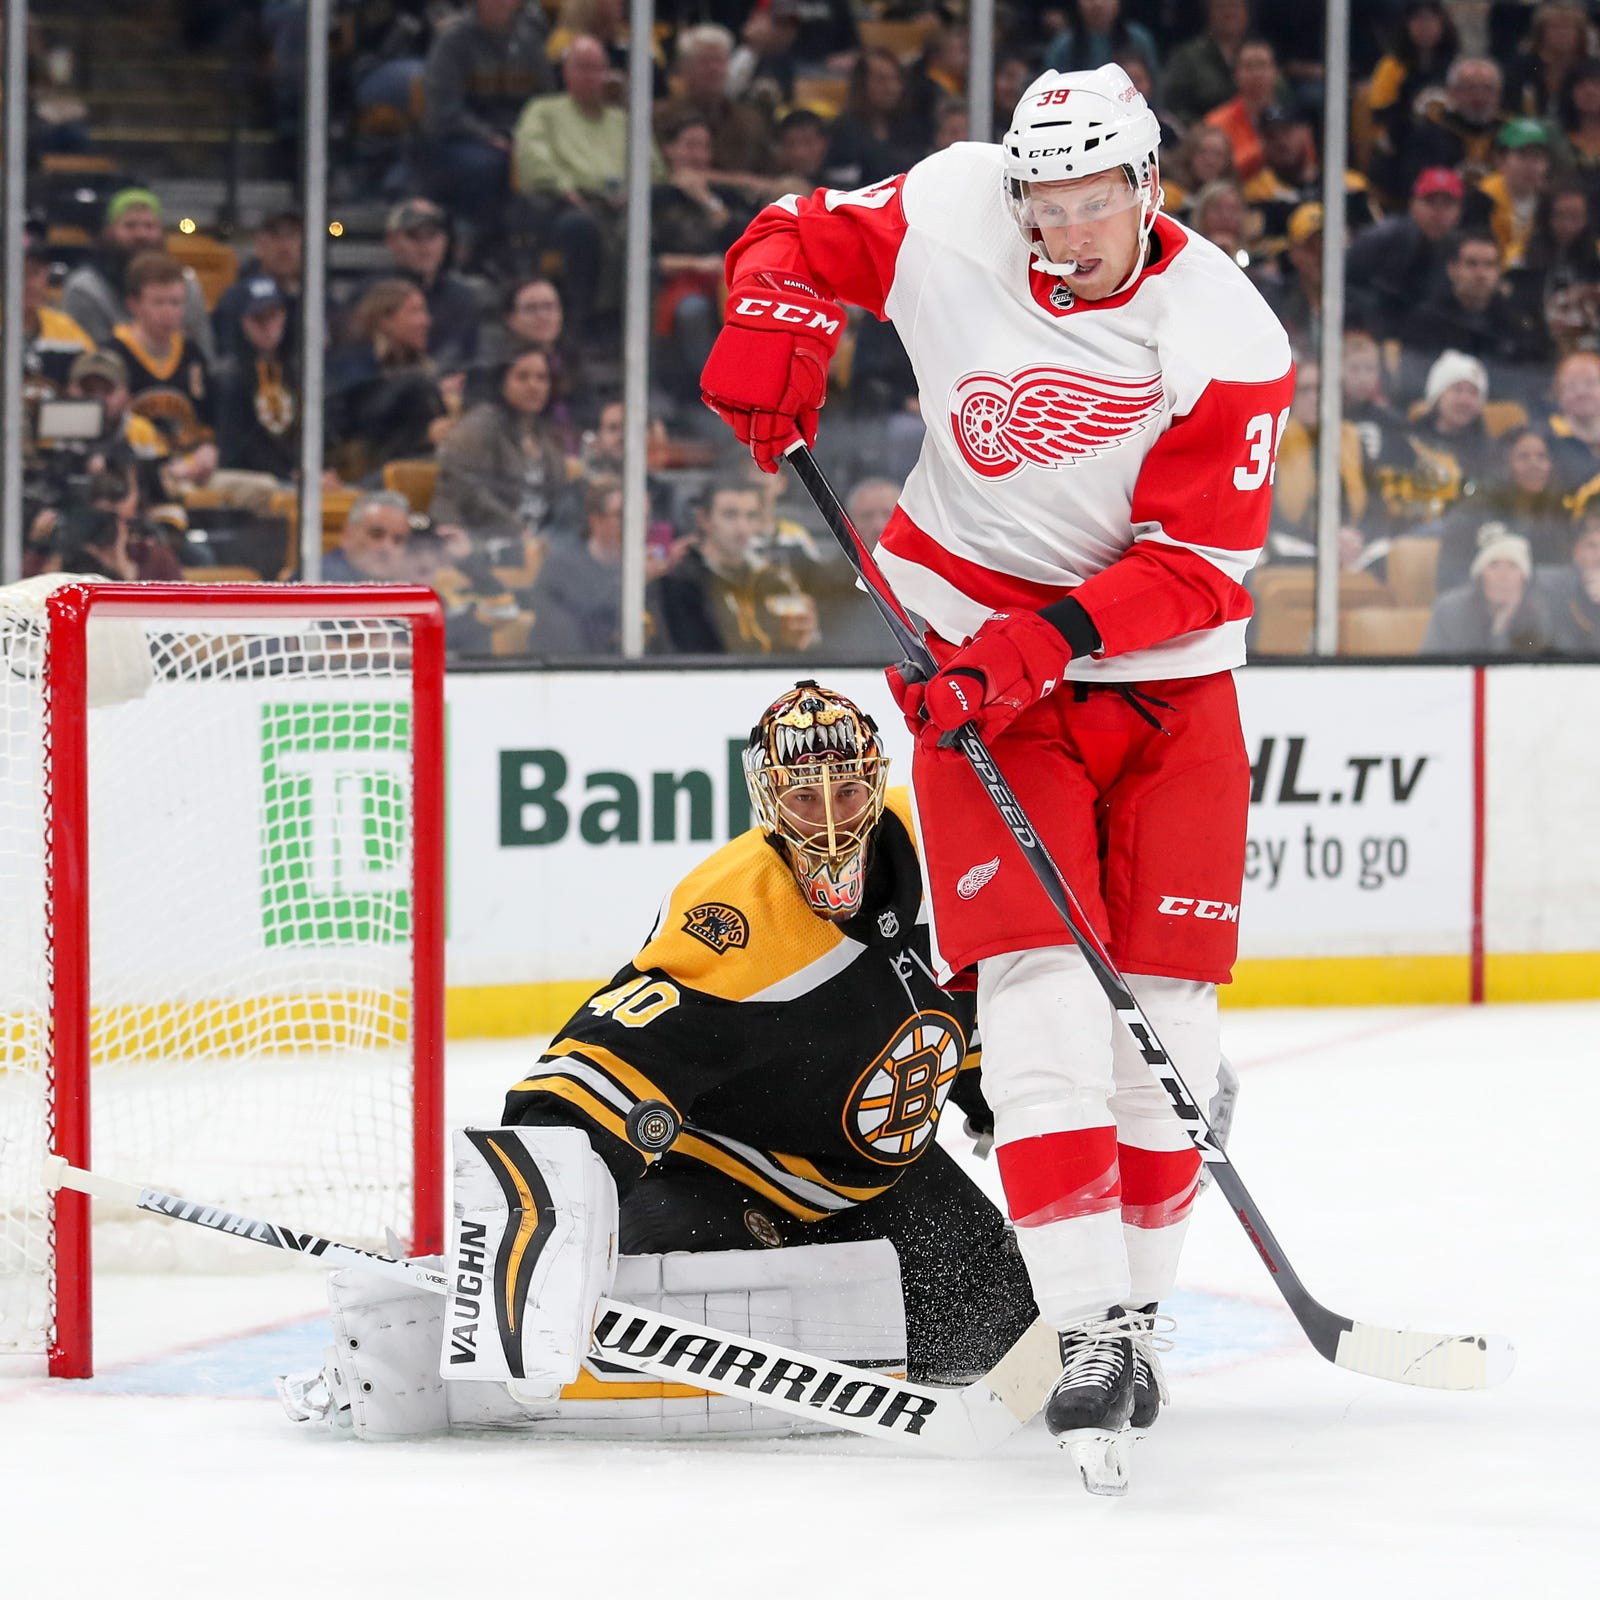 Detroit Red Wings' Anthony Mantha struggling, but can't snap out of it